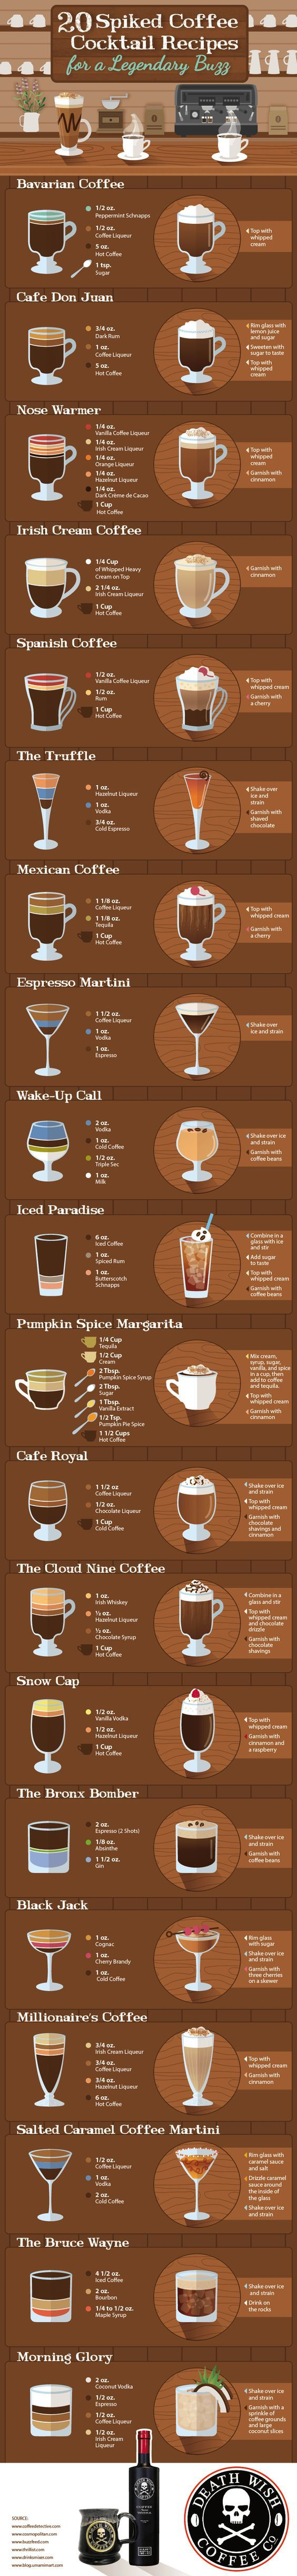 You've surely heard of coffee-flavored beers, but what about coffee cocktails? And not just cocktails that taste like coffee - we're talking about using a cup o